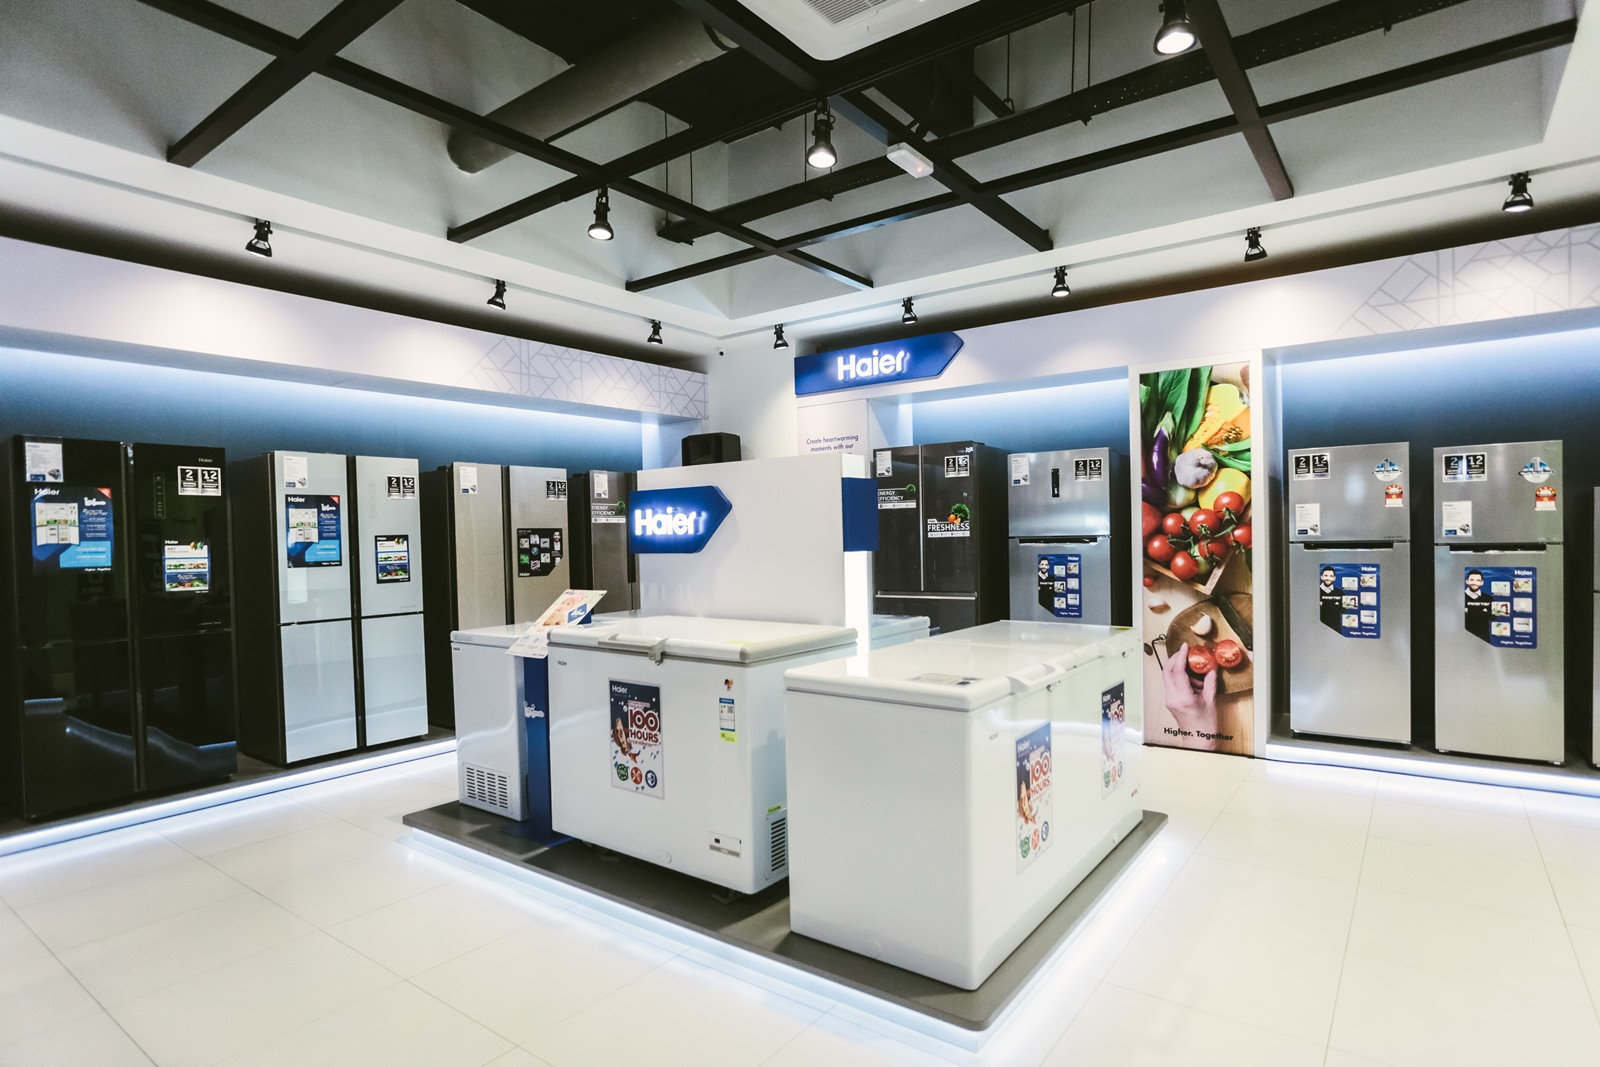 Modern refrigerators displayed at the Haier Experience Centre.